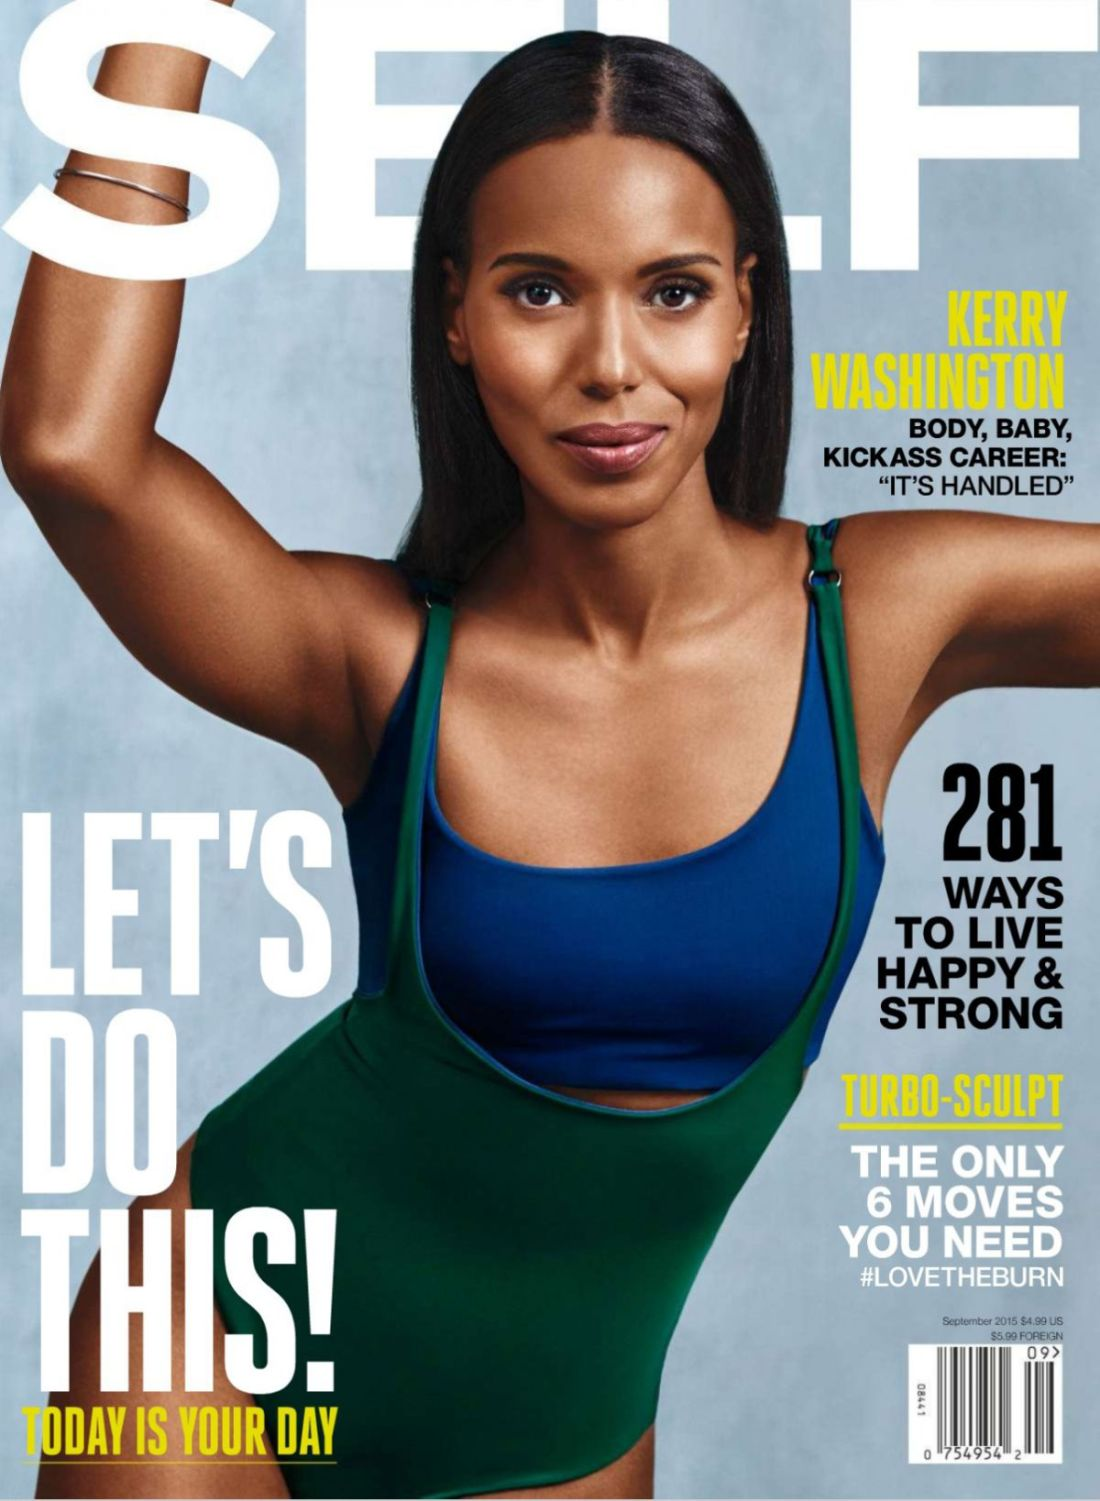 kerry-washington-in-self-magazine-september-2015-issue_1